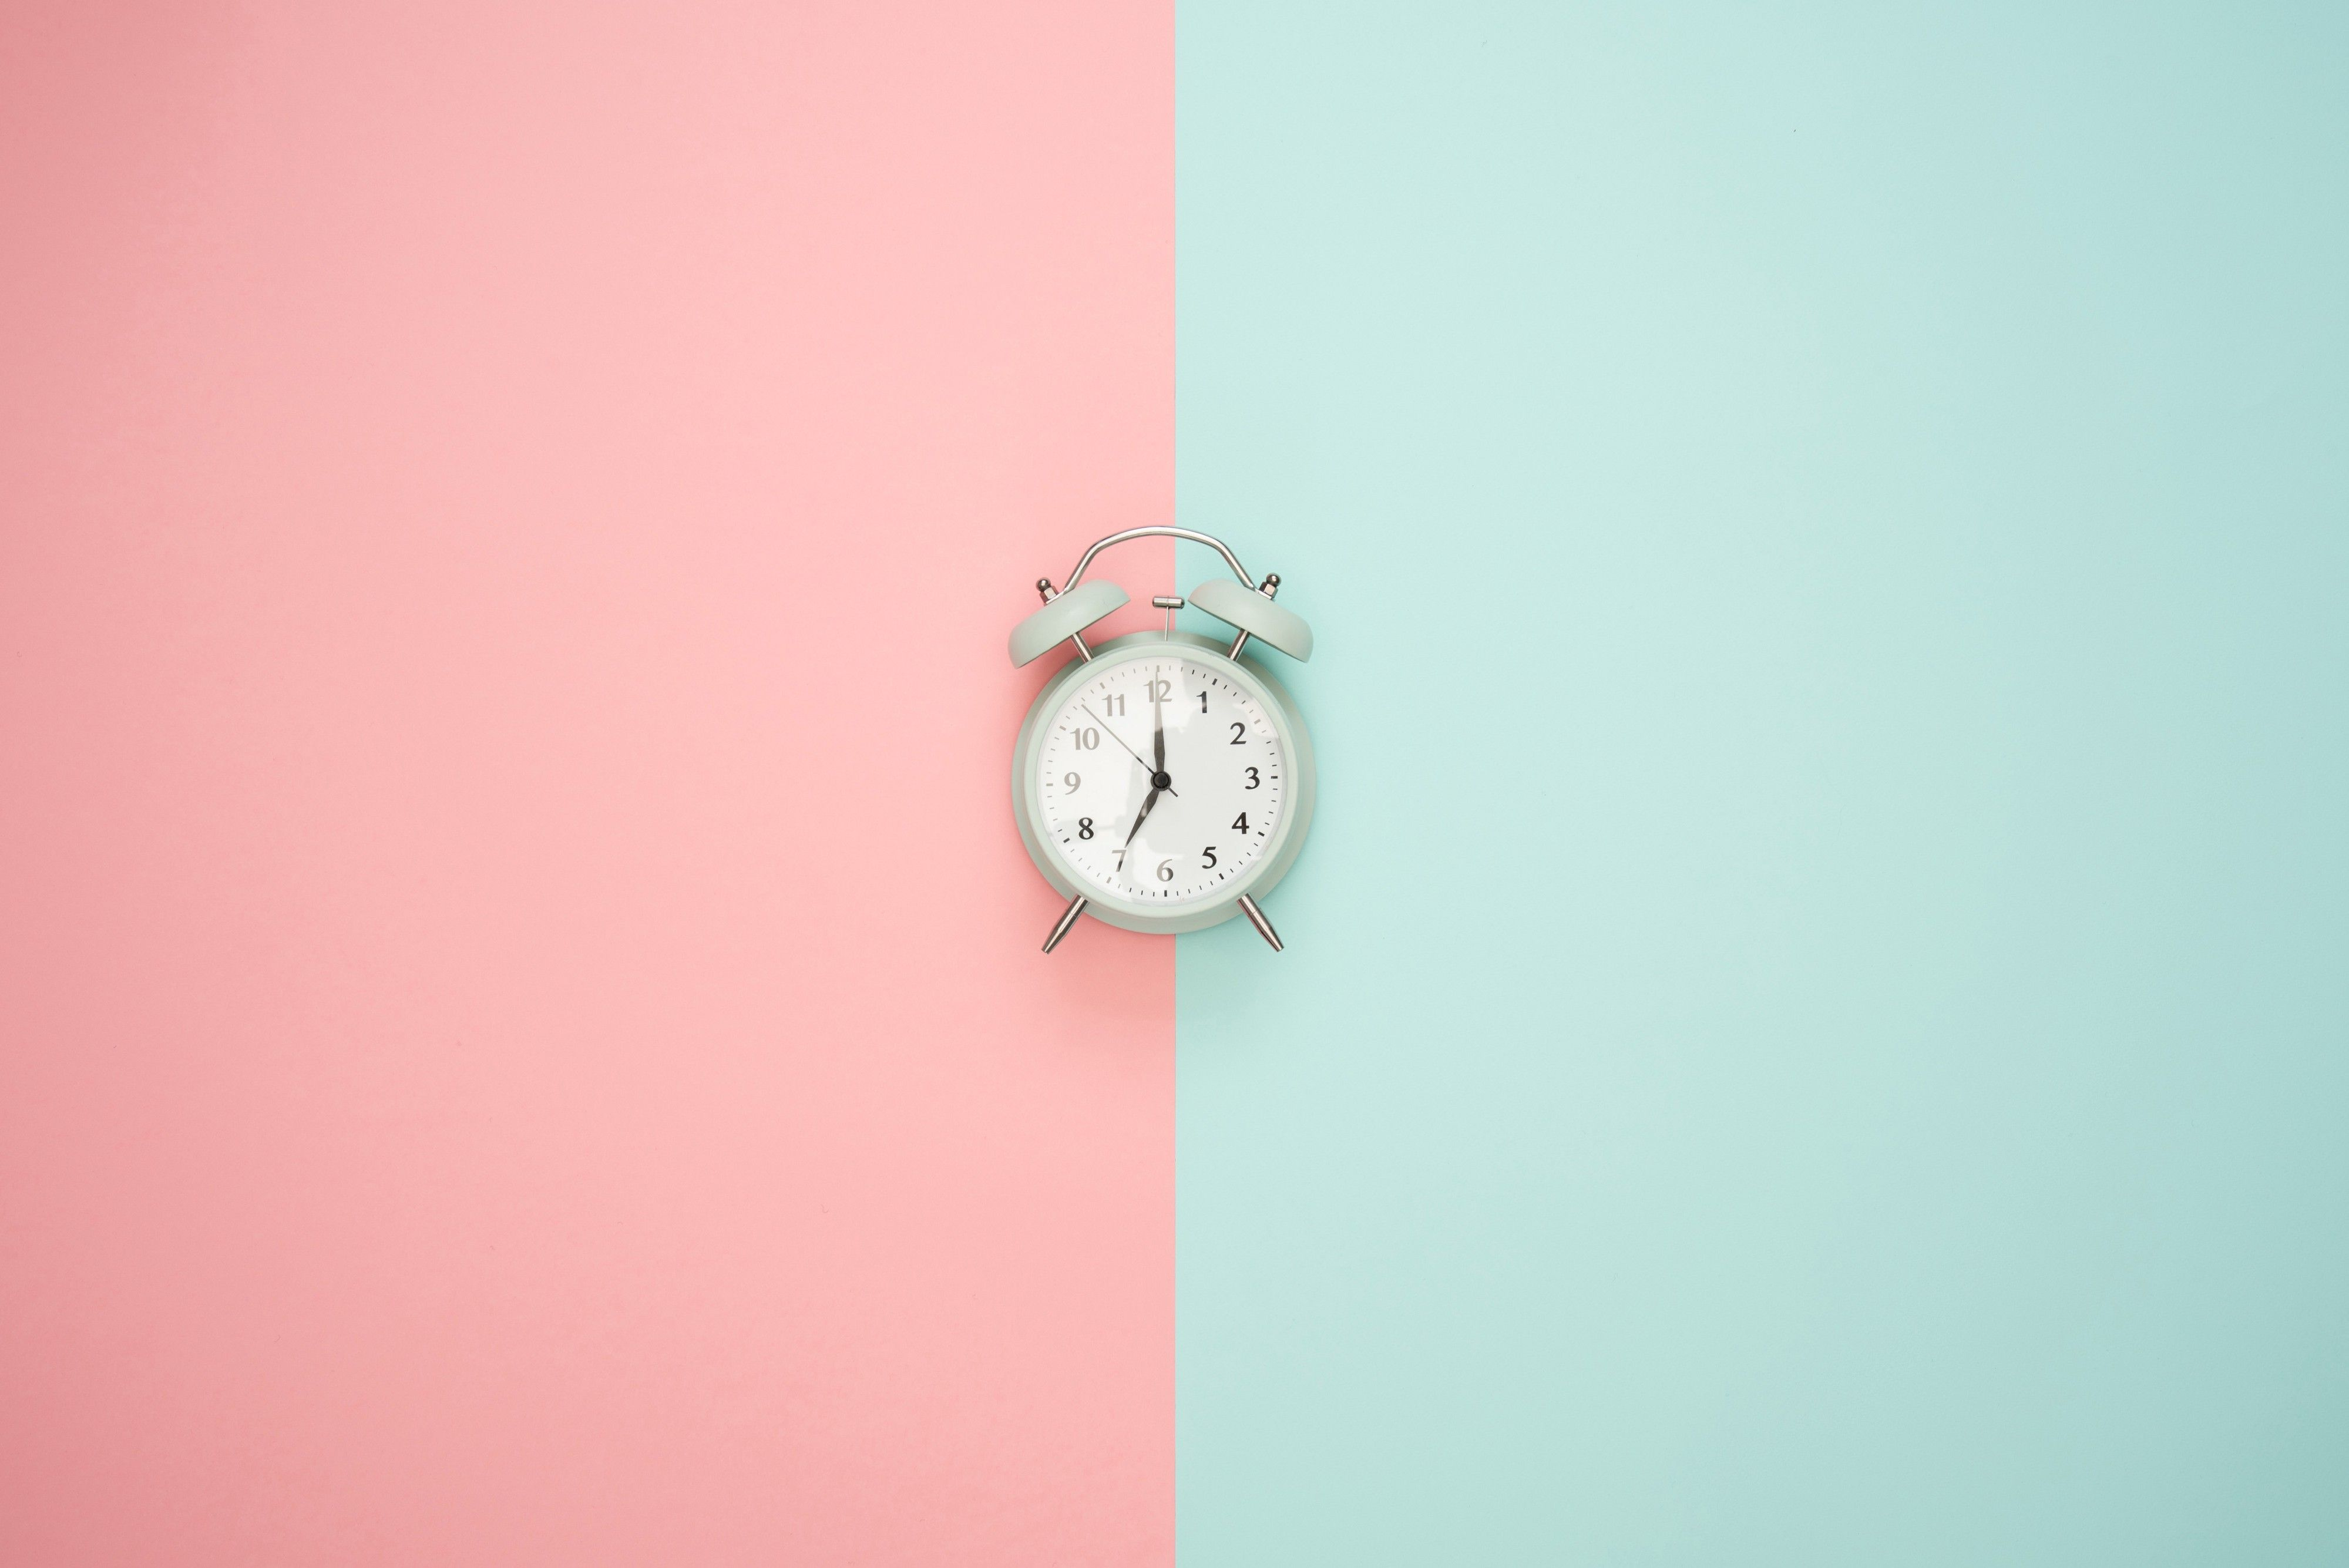 This Mindful Productivity Tool Has Given Me My Time Back In 2020 No Time For Me Clock Time Management